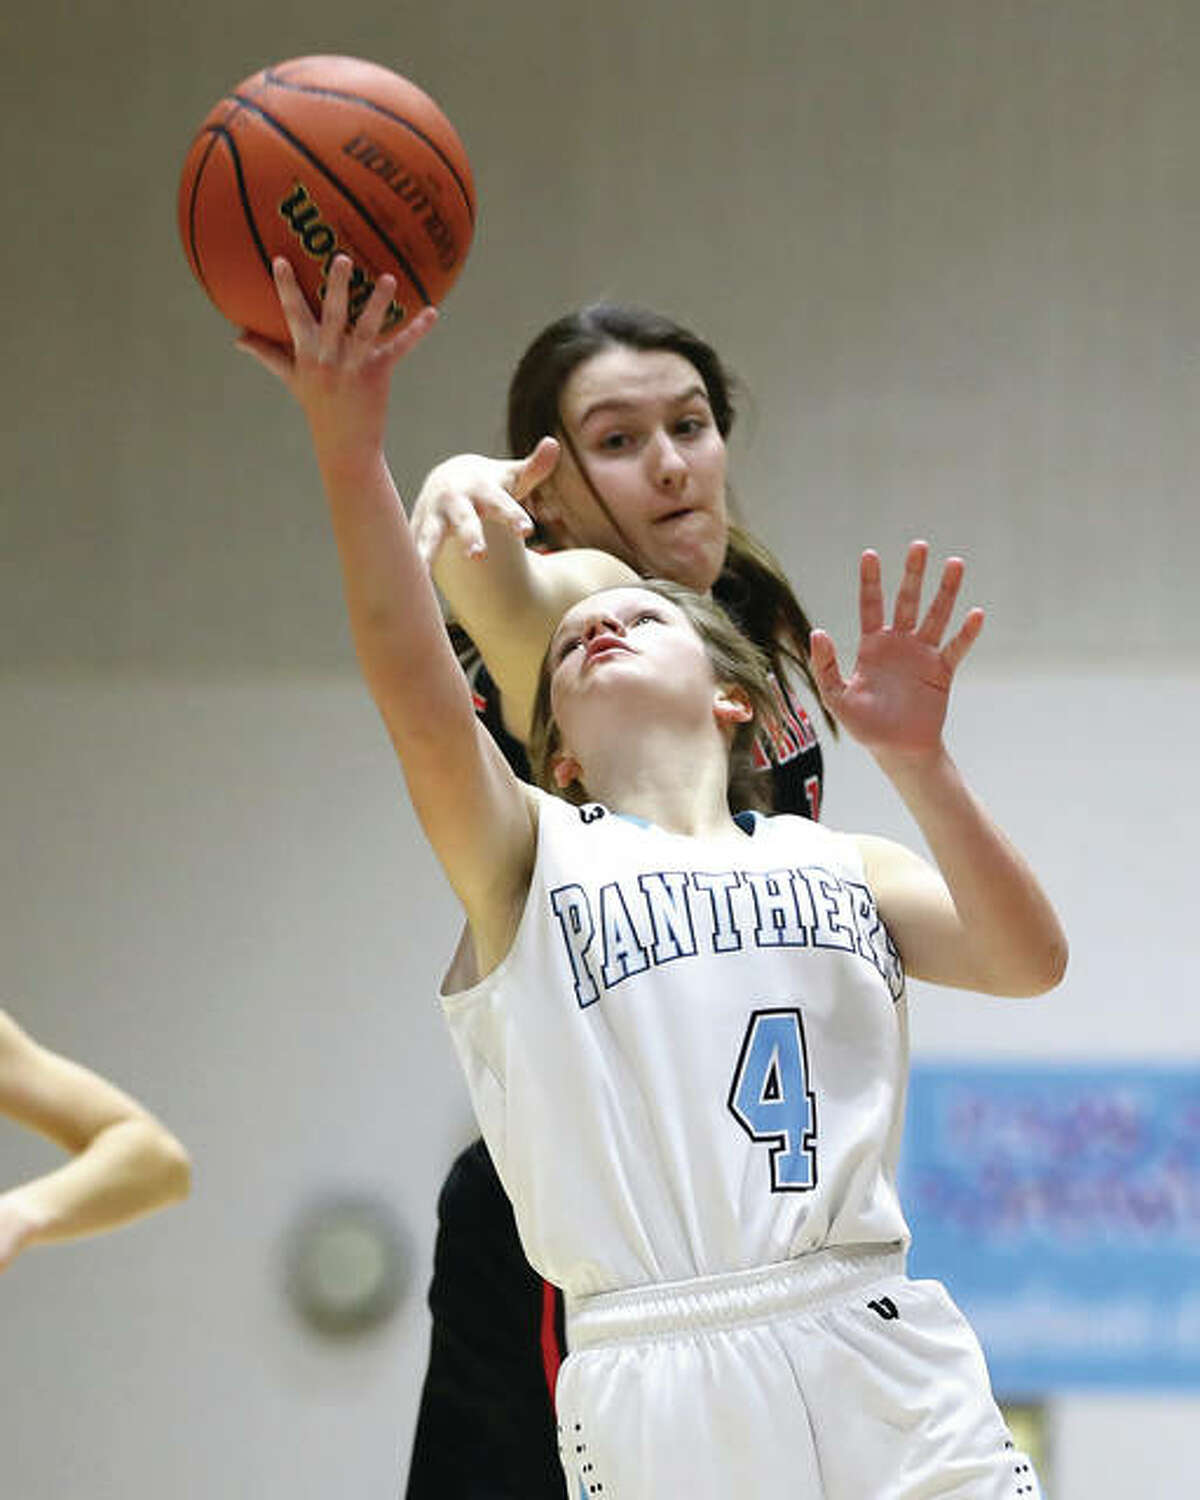 Jersey's Brianna Schroeder (front), shown scoring after getting past Triad's Caleigh Miller in a Mississippi Valley Conference game Thursday at Havens Gym in Jerseyville. On Saturday night, the Panthers were in Carrollton and Schroeder scored 11 points in a win over the Hawks.